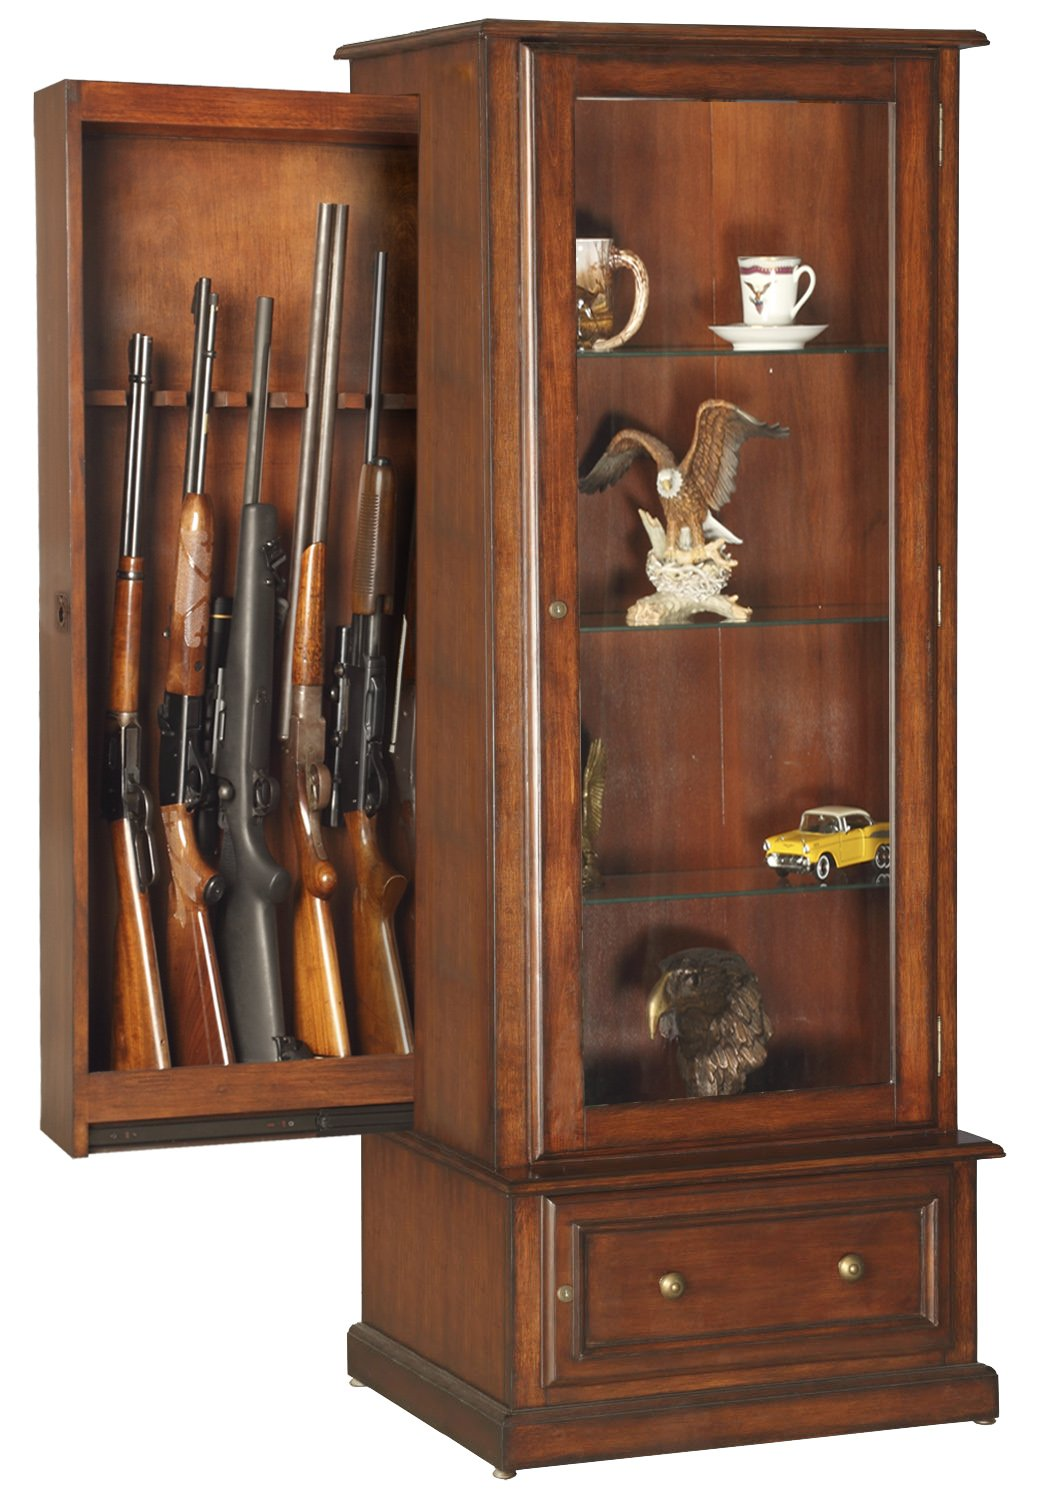 wooden near for gun cheap all frightening cabinet wood sale used ontario design cabinets custom photos